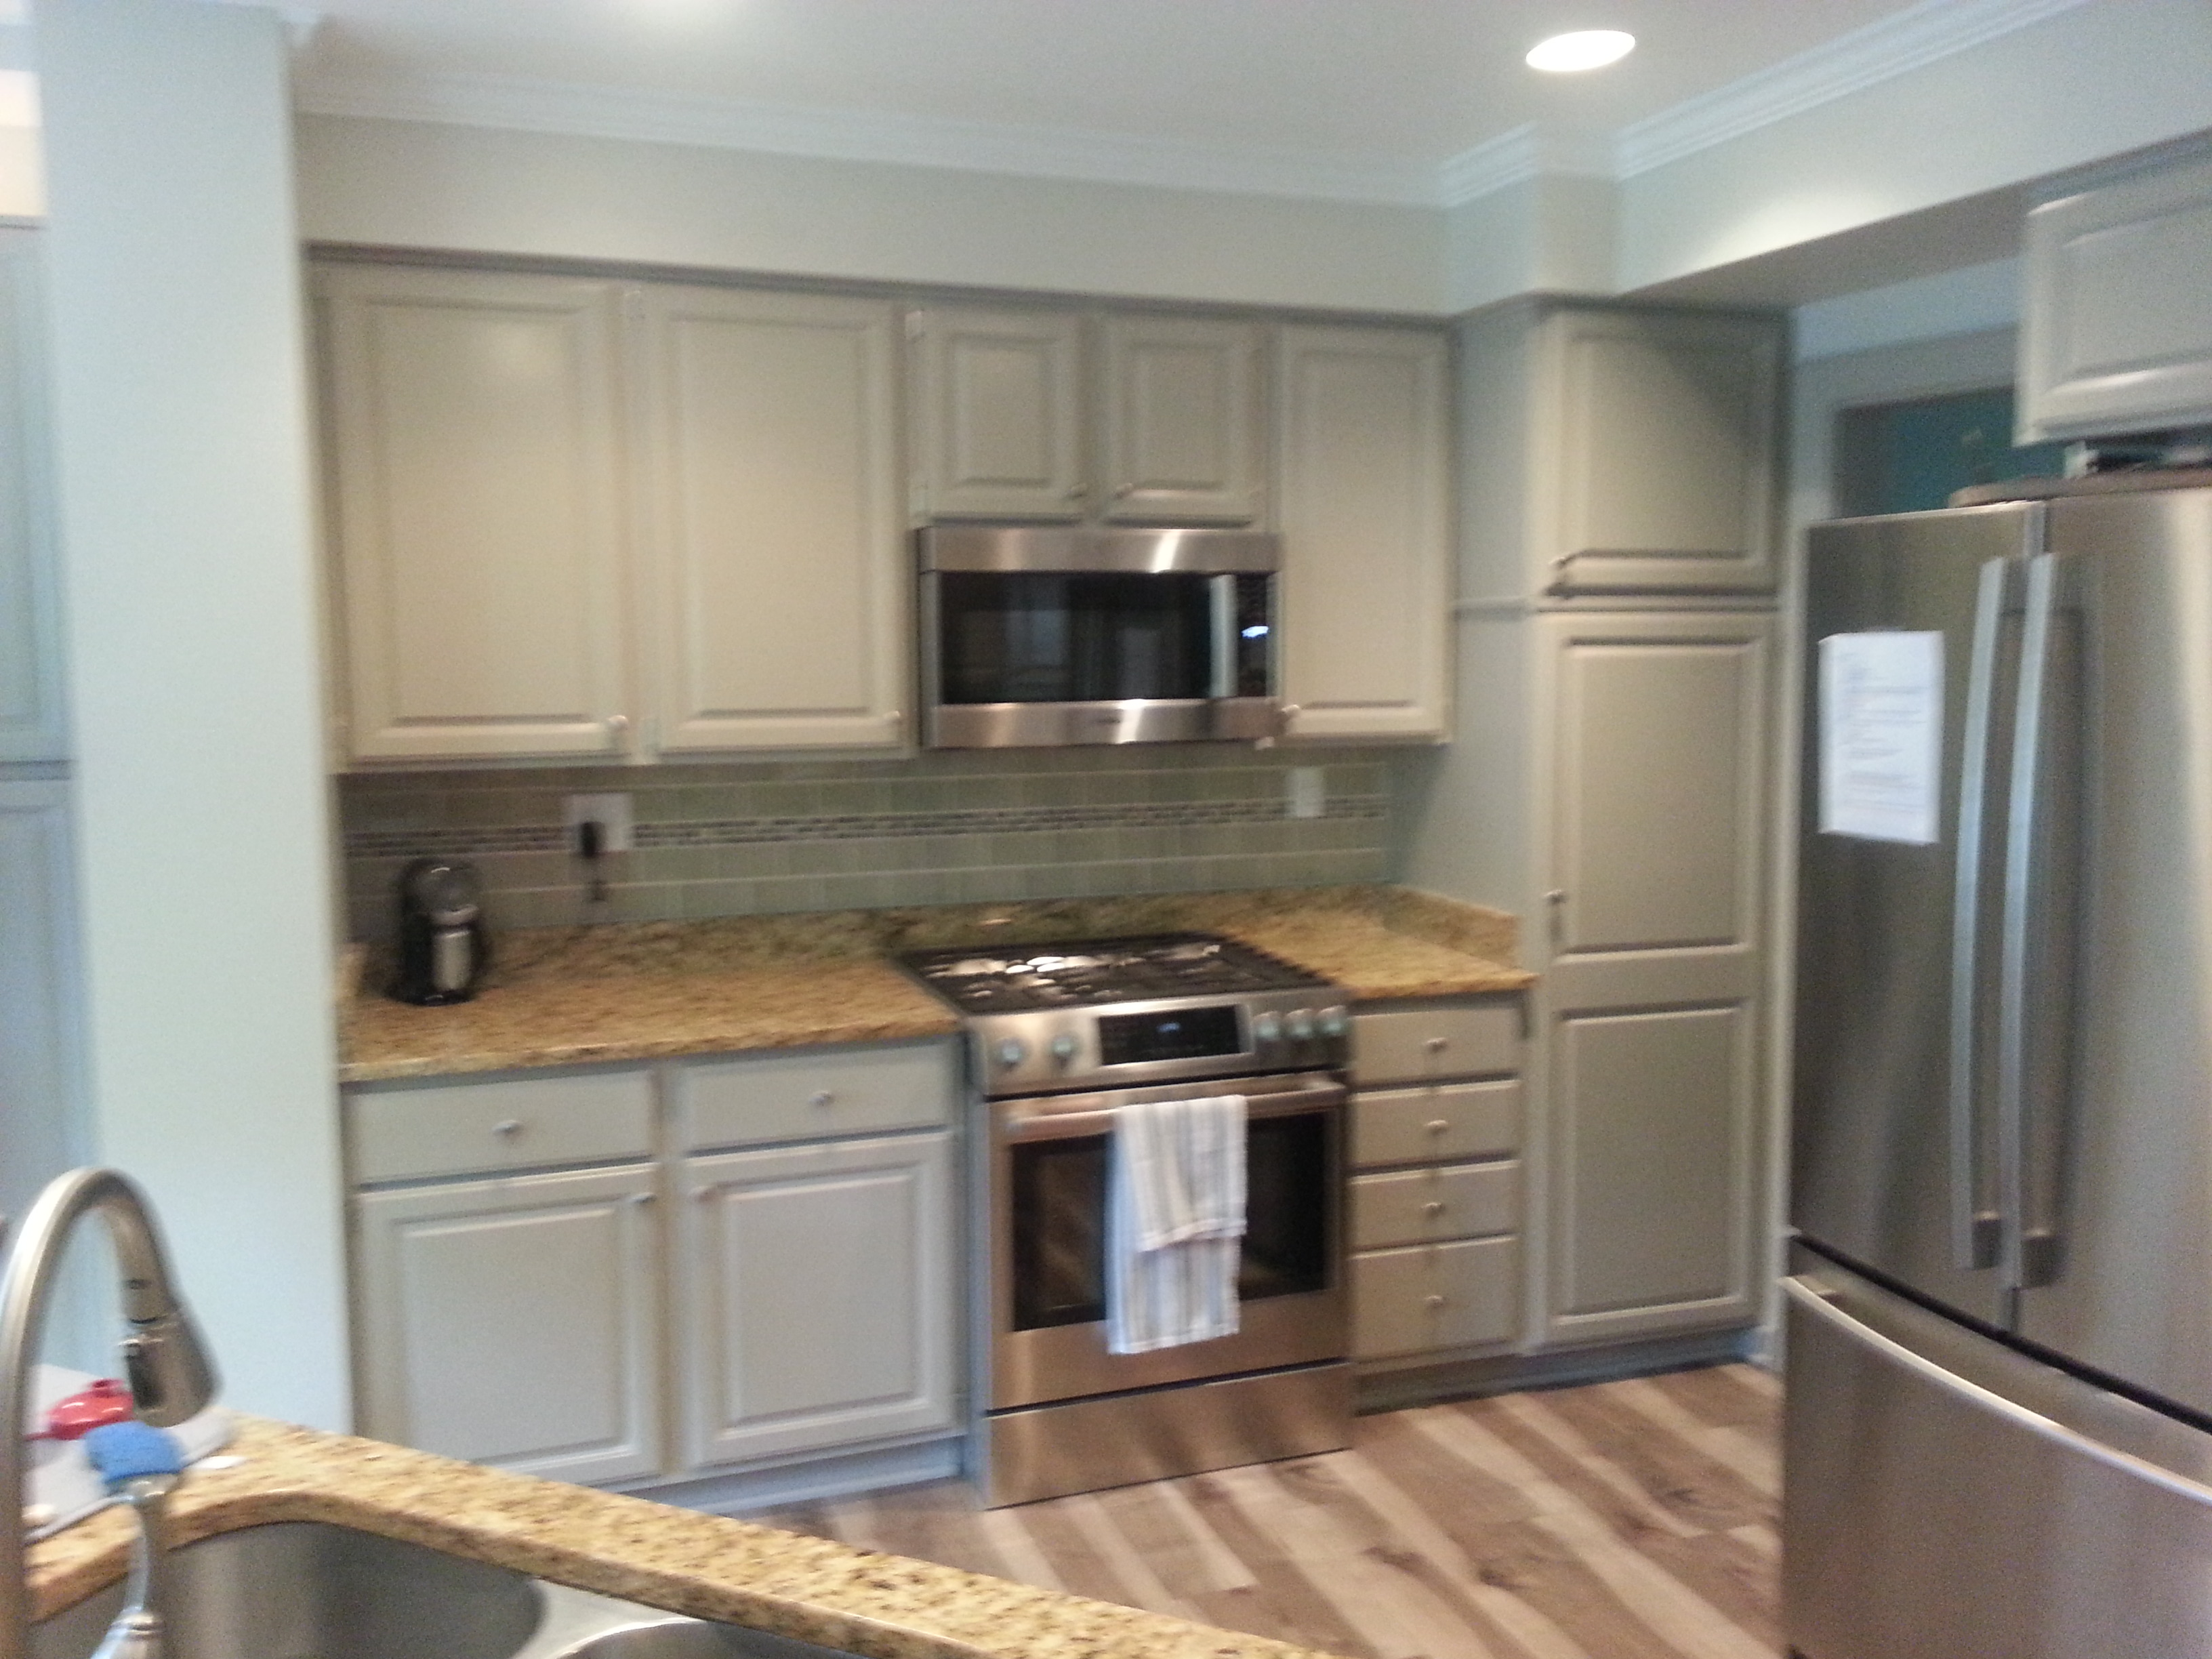 Light Stained Cabinets Trendy Kitchen Stain Cabinets That Are - Light gray stained cabinets